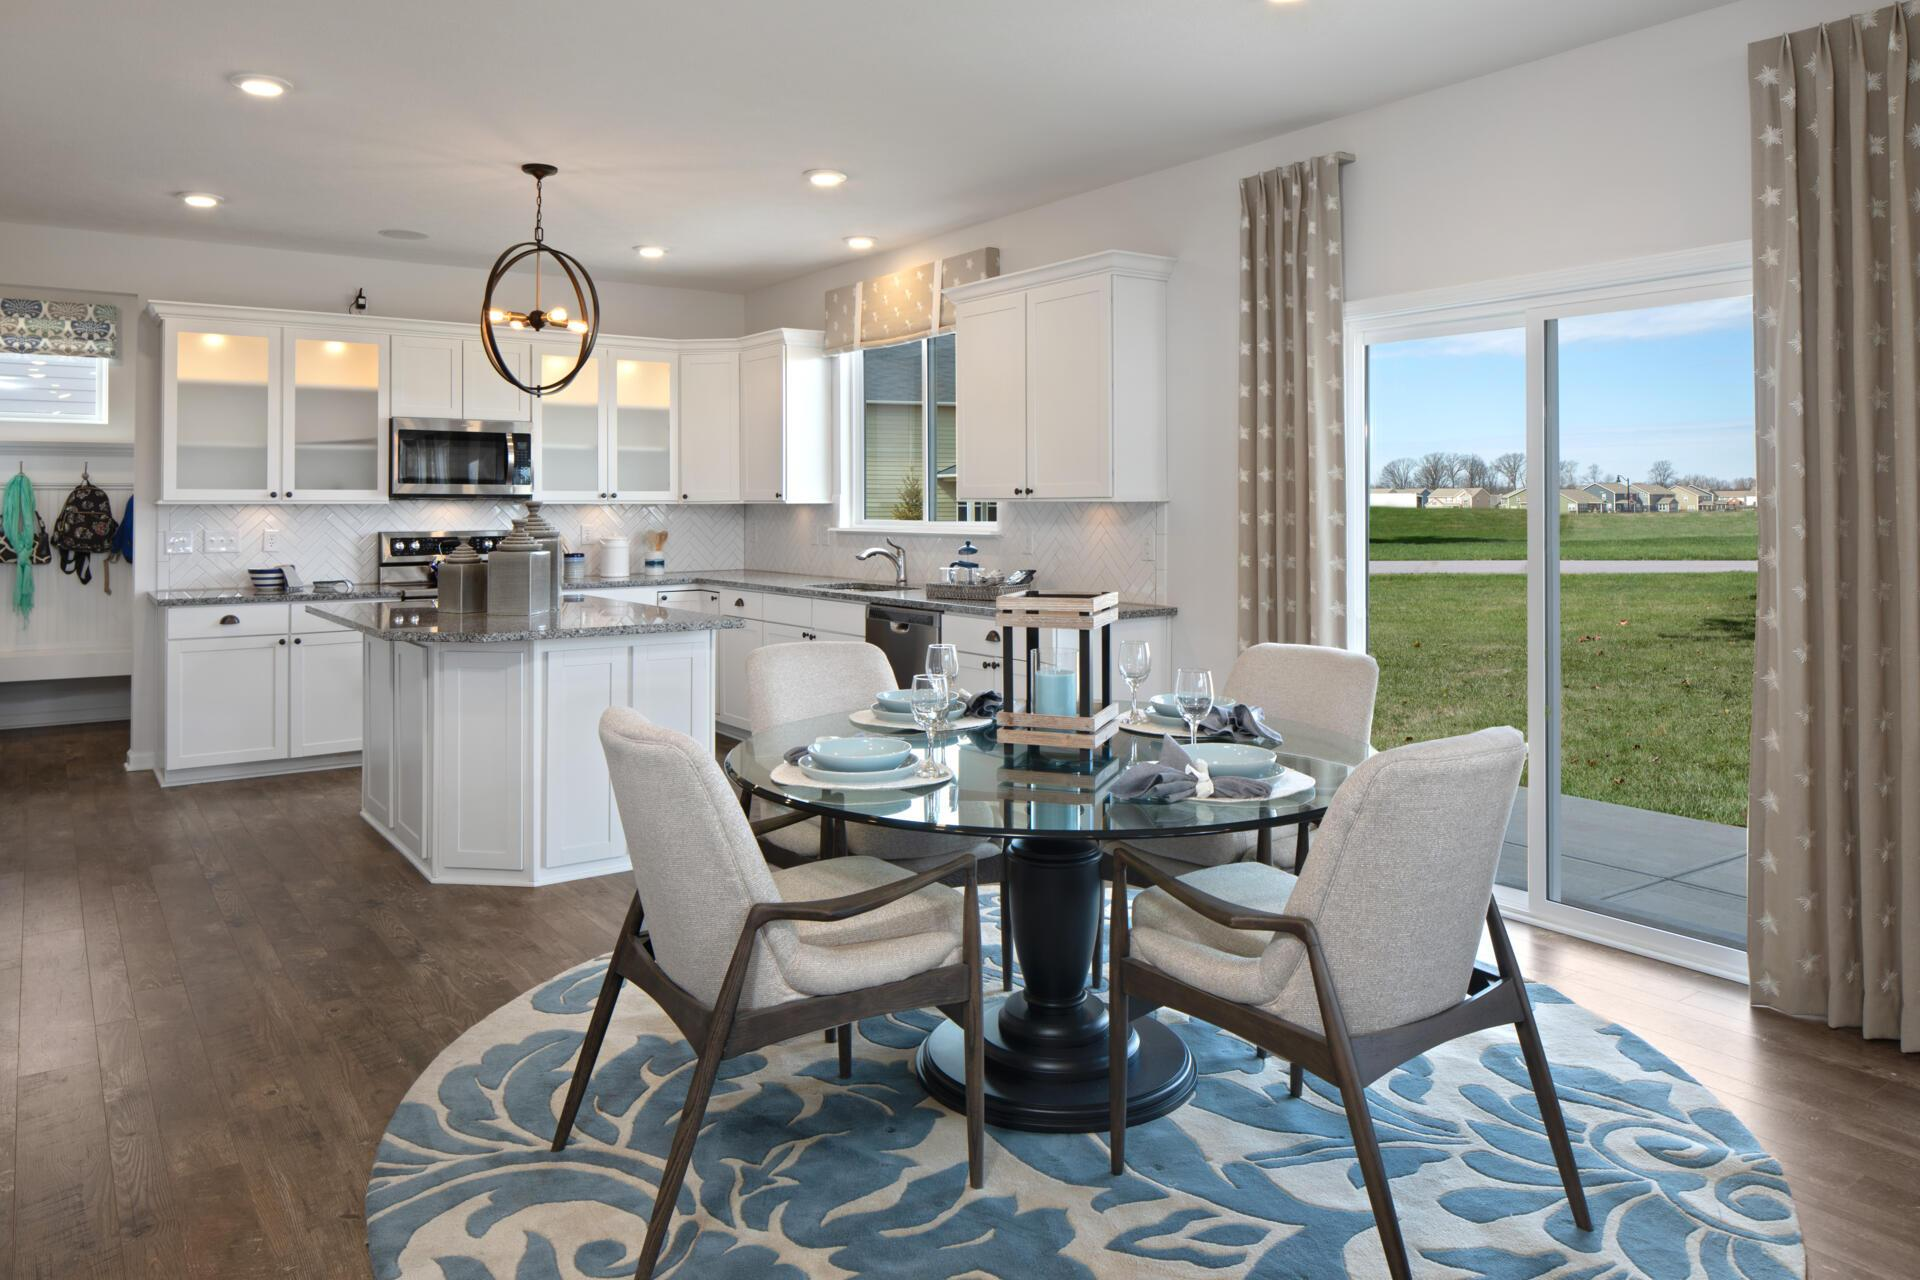 Kitchen featured in the Walkerton By Drees Homes in Indianapolis, IN